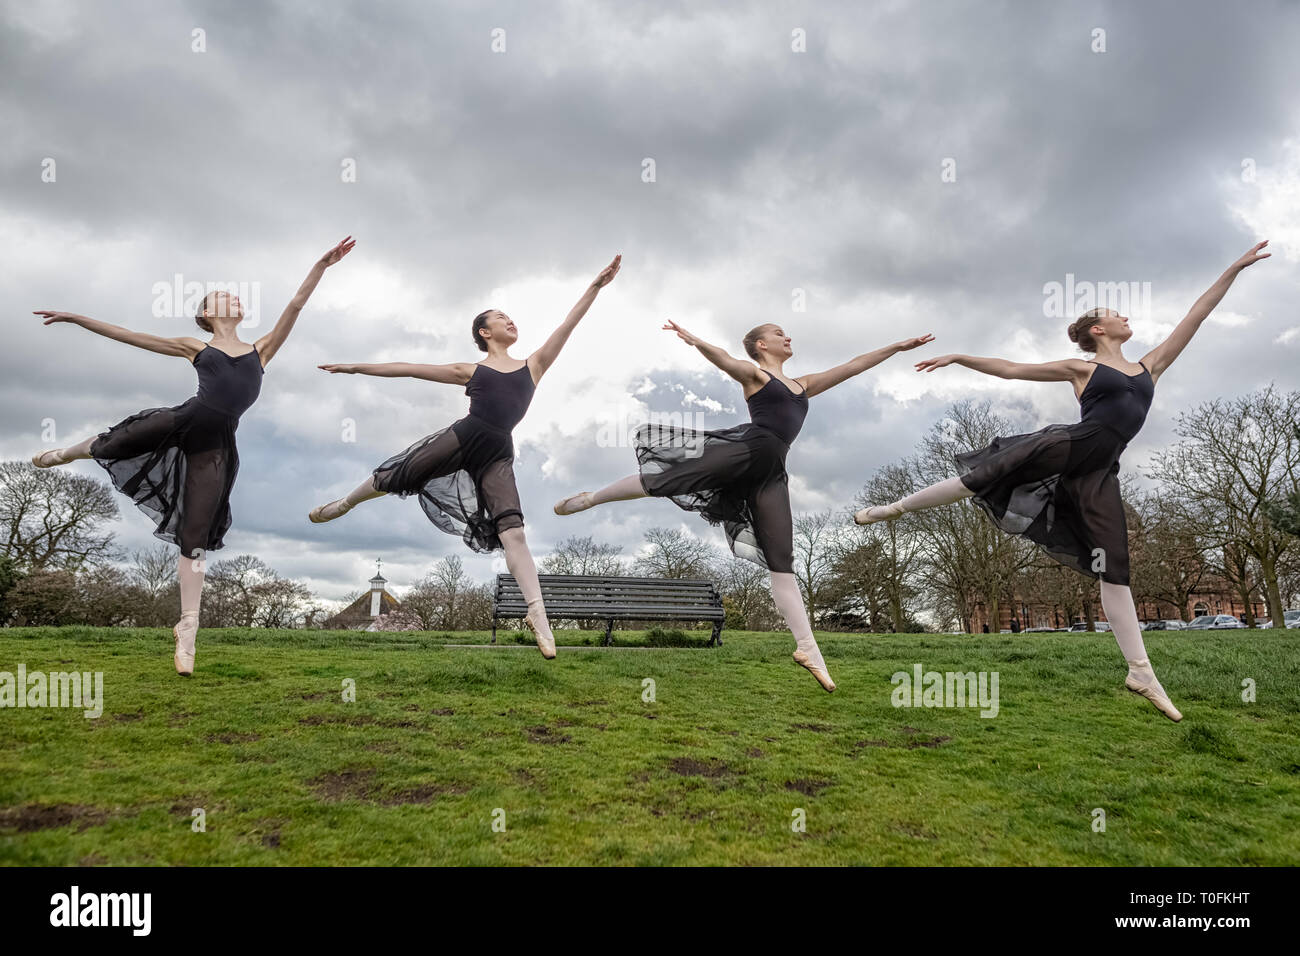 London, UK. 20th March, 2019. Dancers from Semaphore Ballet Company perform in Greenwich Park in the morning light of the spring equinox. L-R Poppy Barnes, Natsuki Uemura, Sohvi Paallysaho and Alice McDermott are choreographed by Semaphore Ballet Company director Laura Radford. Credit: Guy Corbishley/Alamy Live News - Stock Image